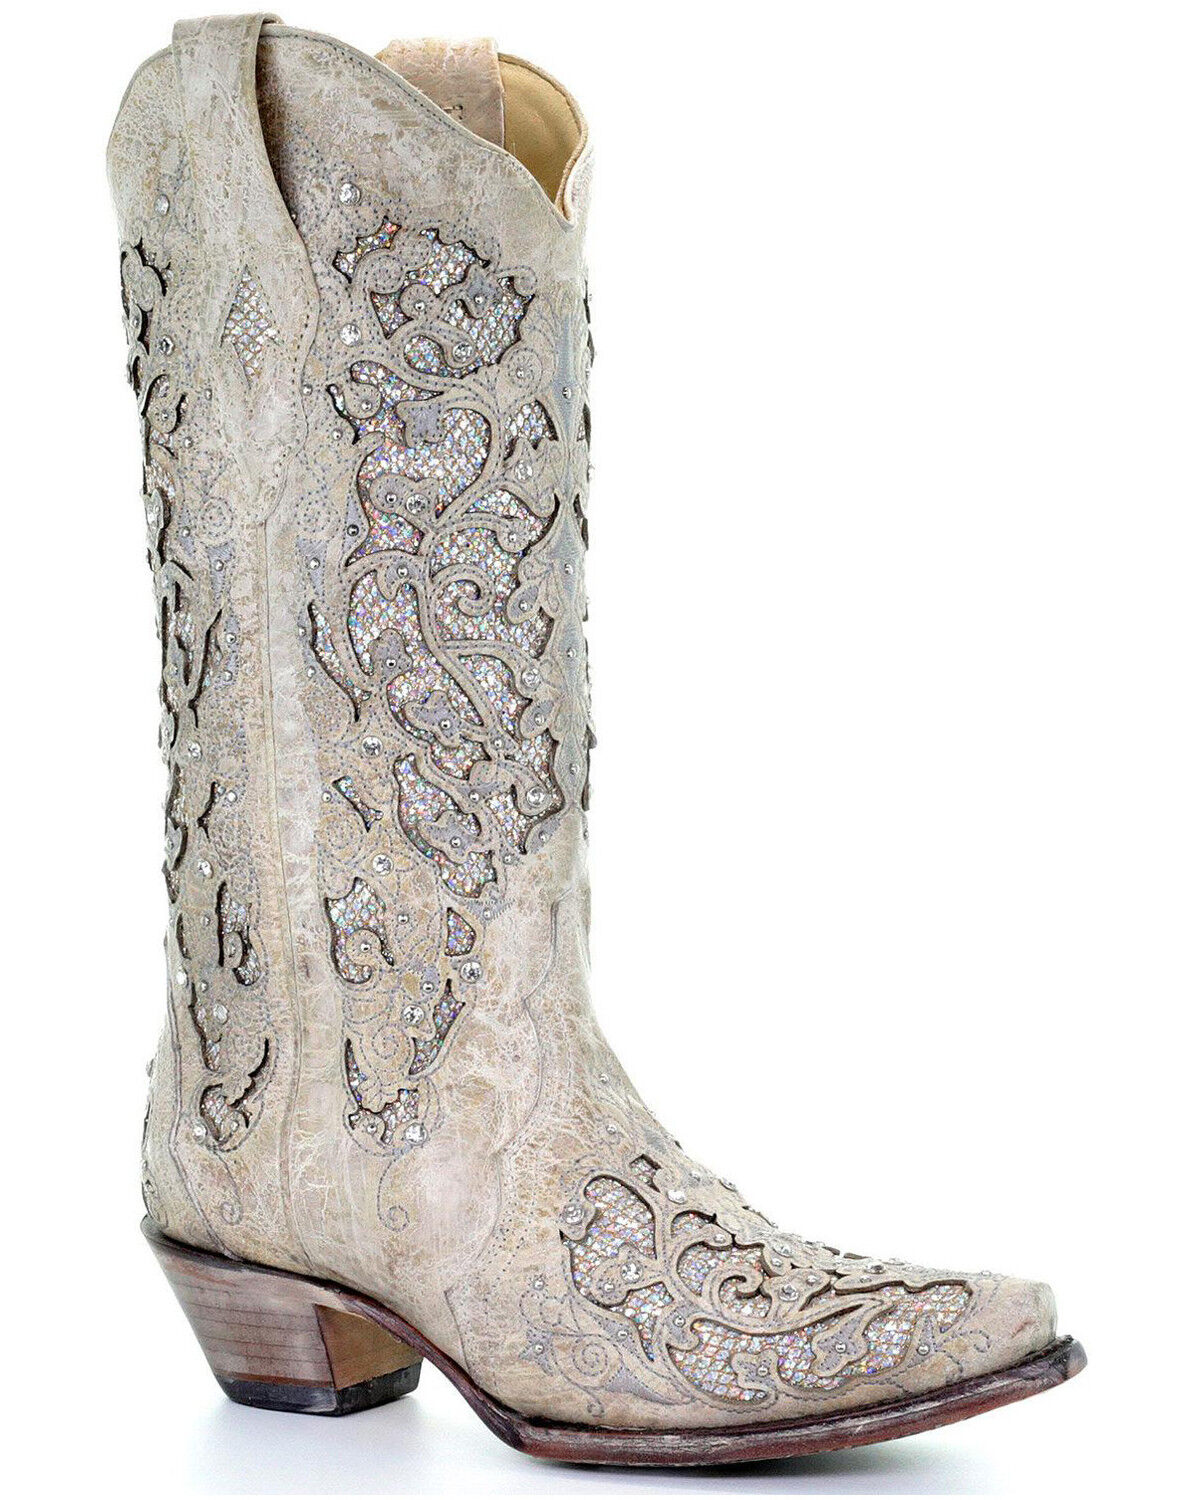 Corral Women/'s Overlay /& Studded Snip Toe Western Ankle Boots Gray G1381